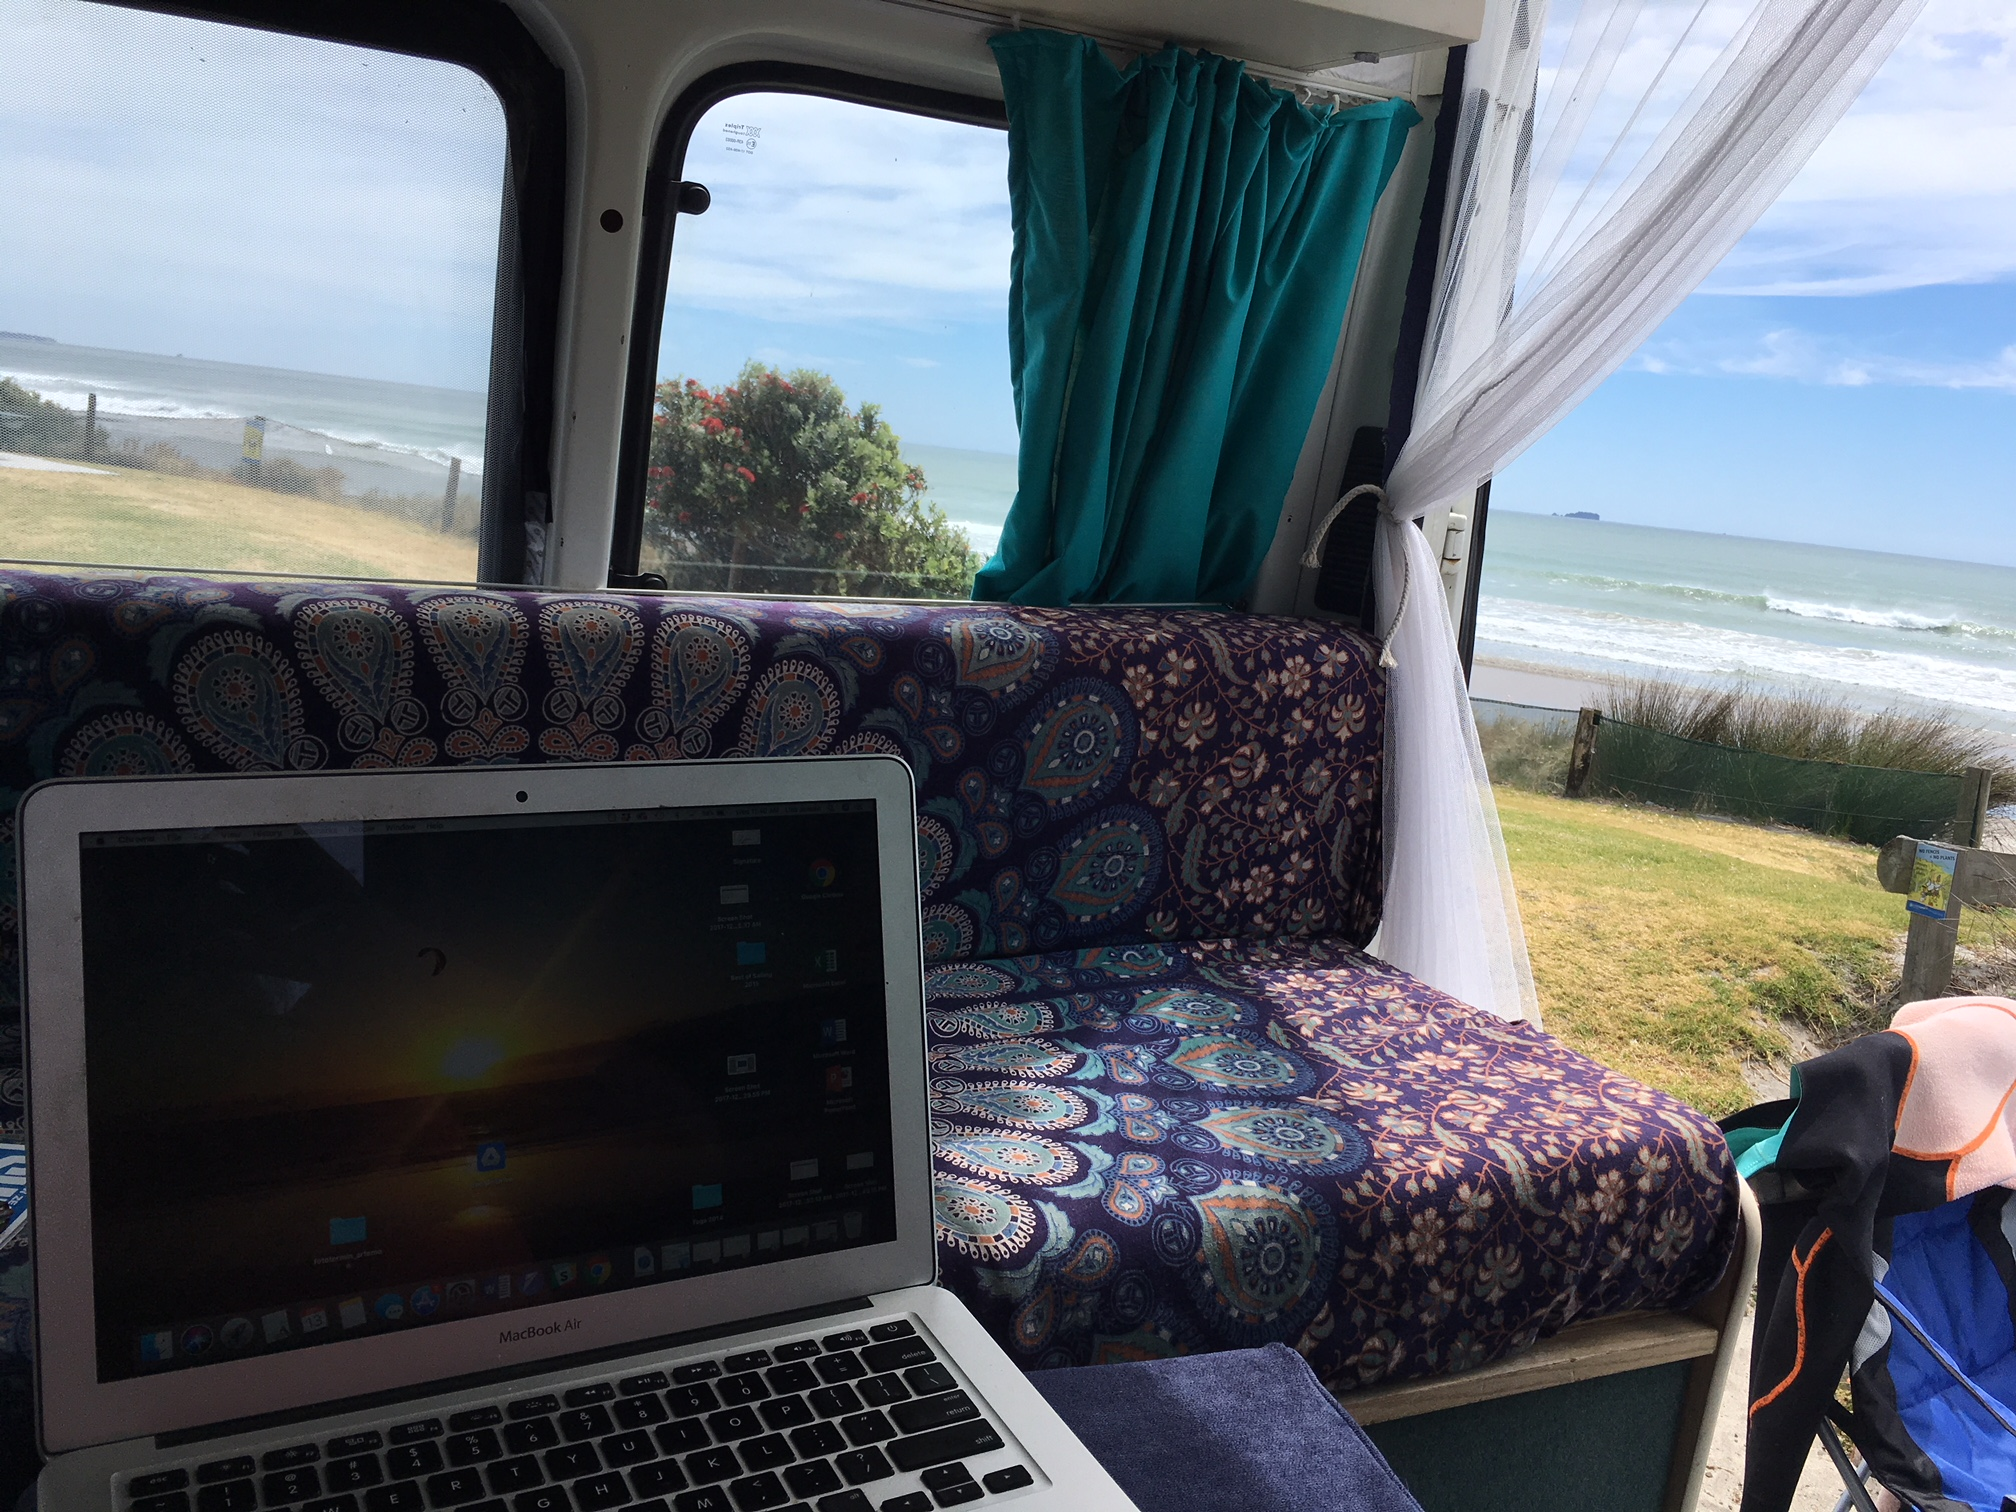 Working from my office with a view :)